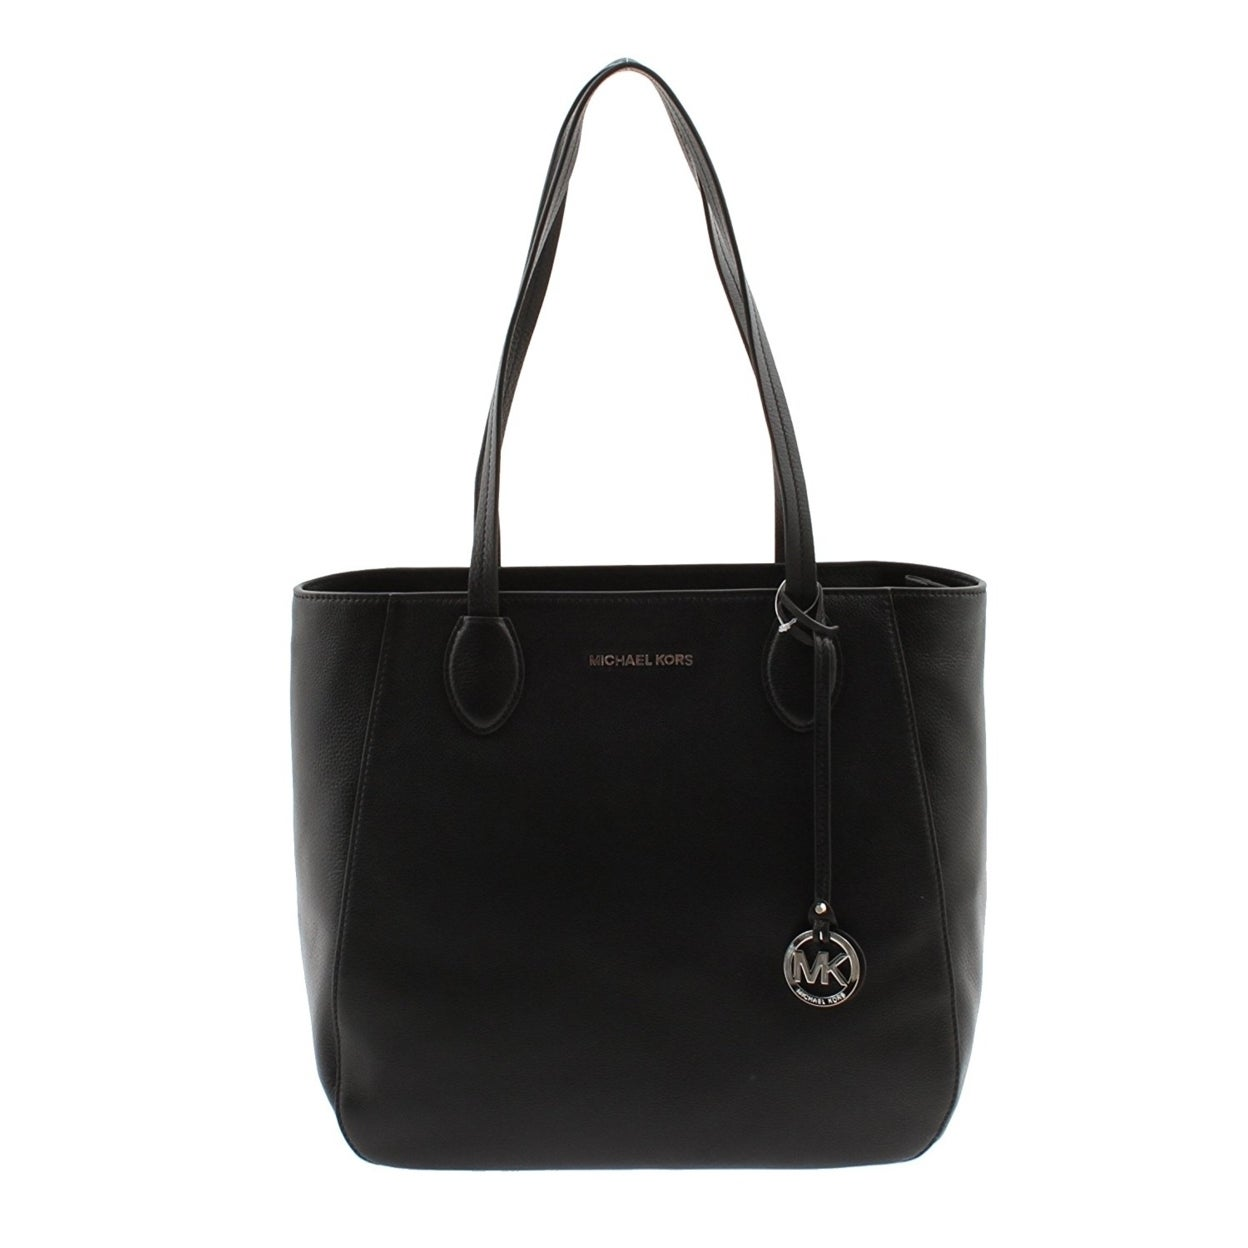 8392f2119781 Shop MICHAEL MICHAEL KORS Ani Large Leather Tote - Free Shipping Today -  Overstock - 23488279